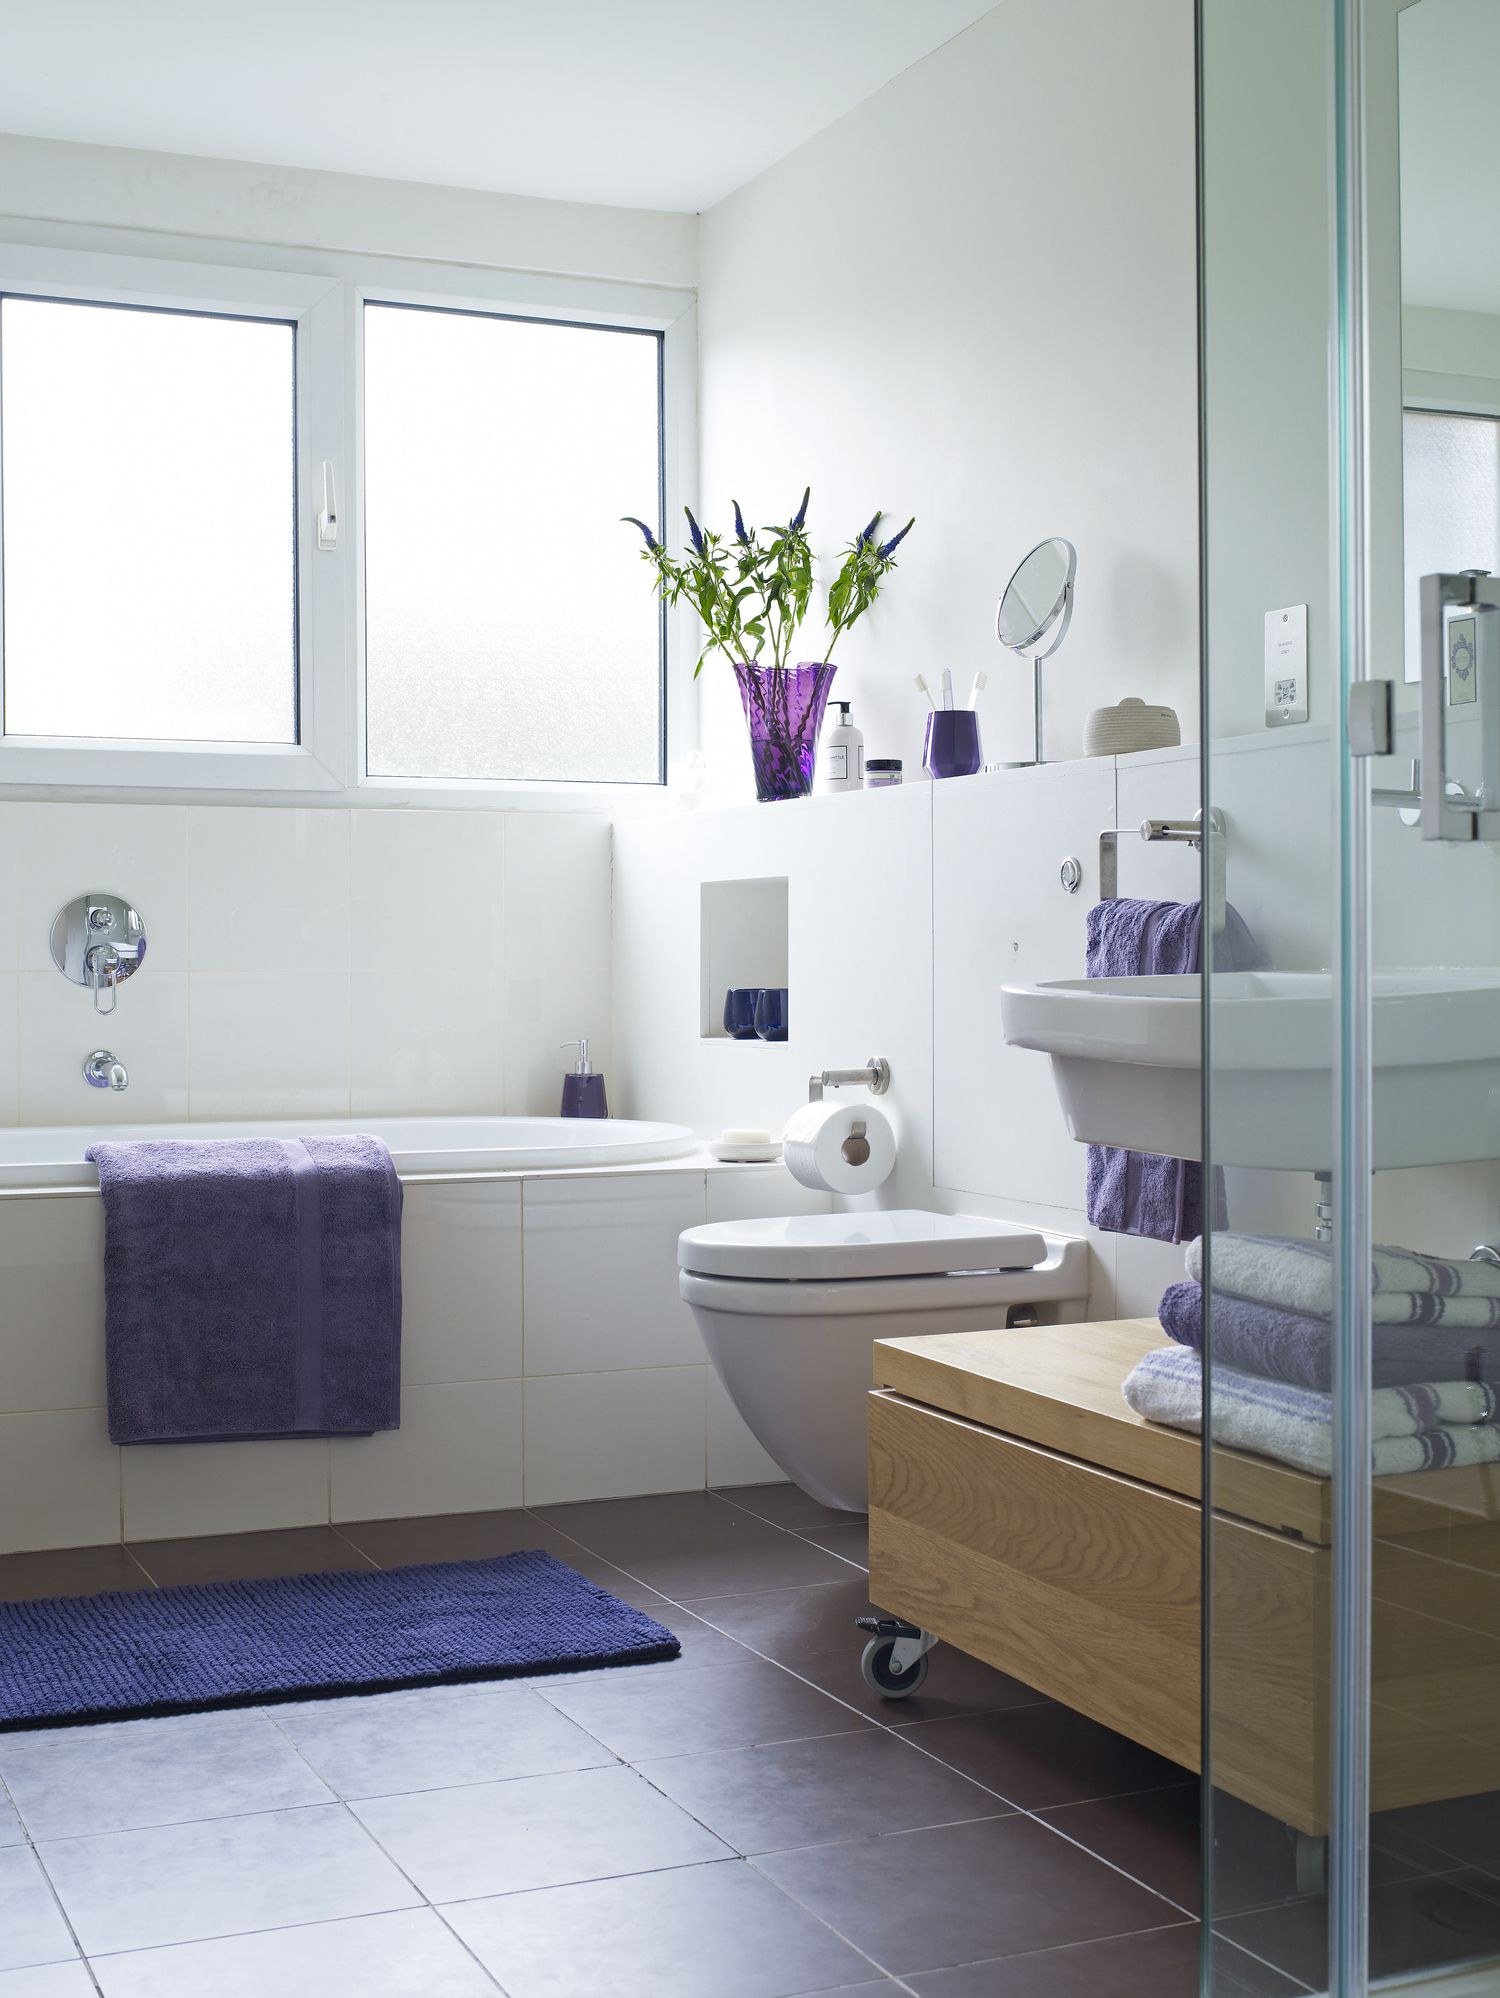 Small Bathroom Photos Ideas - Lilac bath towels for small bathroom ideas